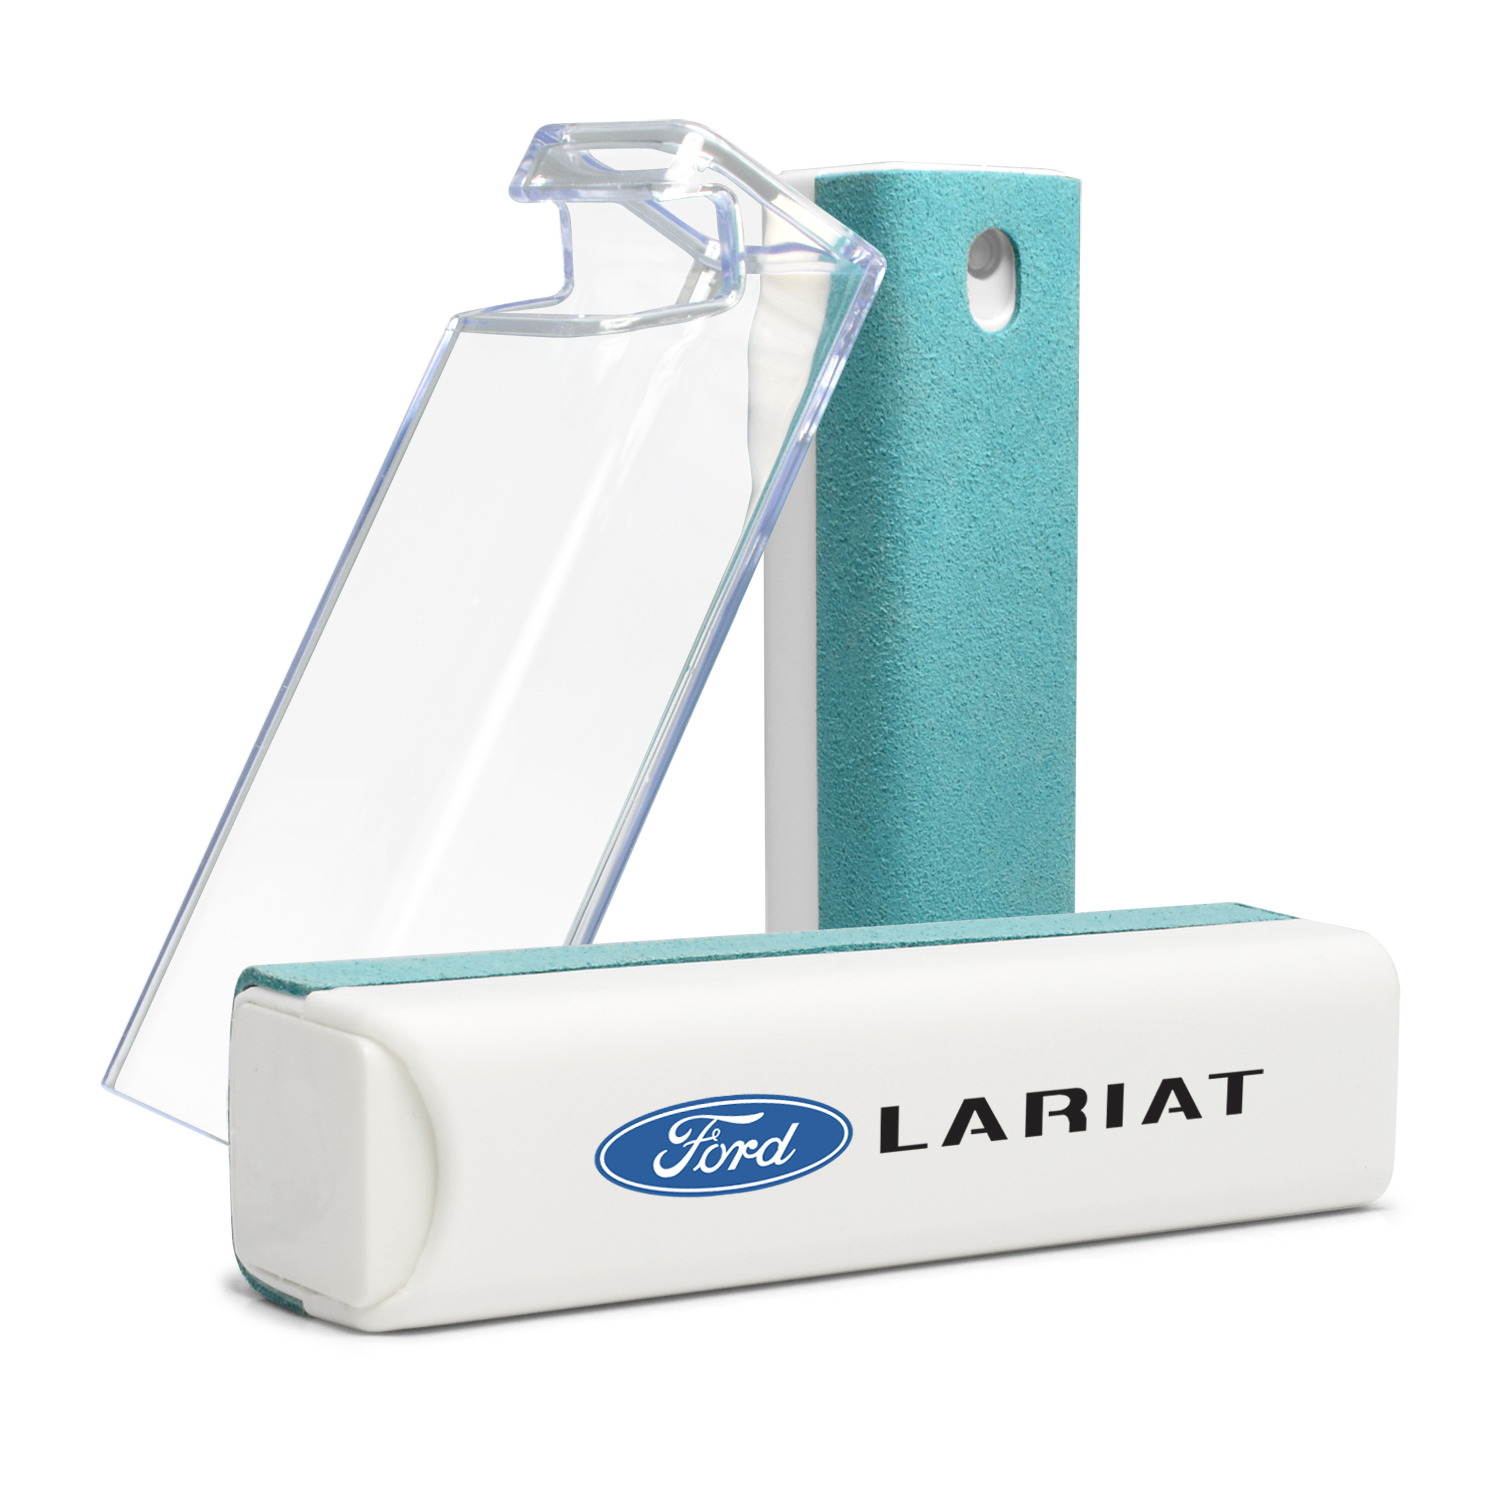 Ford F150 Lariat Blue Microfiber Screen Cleaner for Car Navigation, Cell Phone